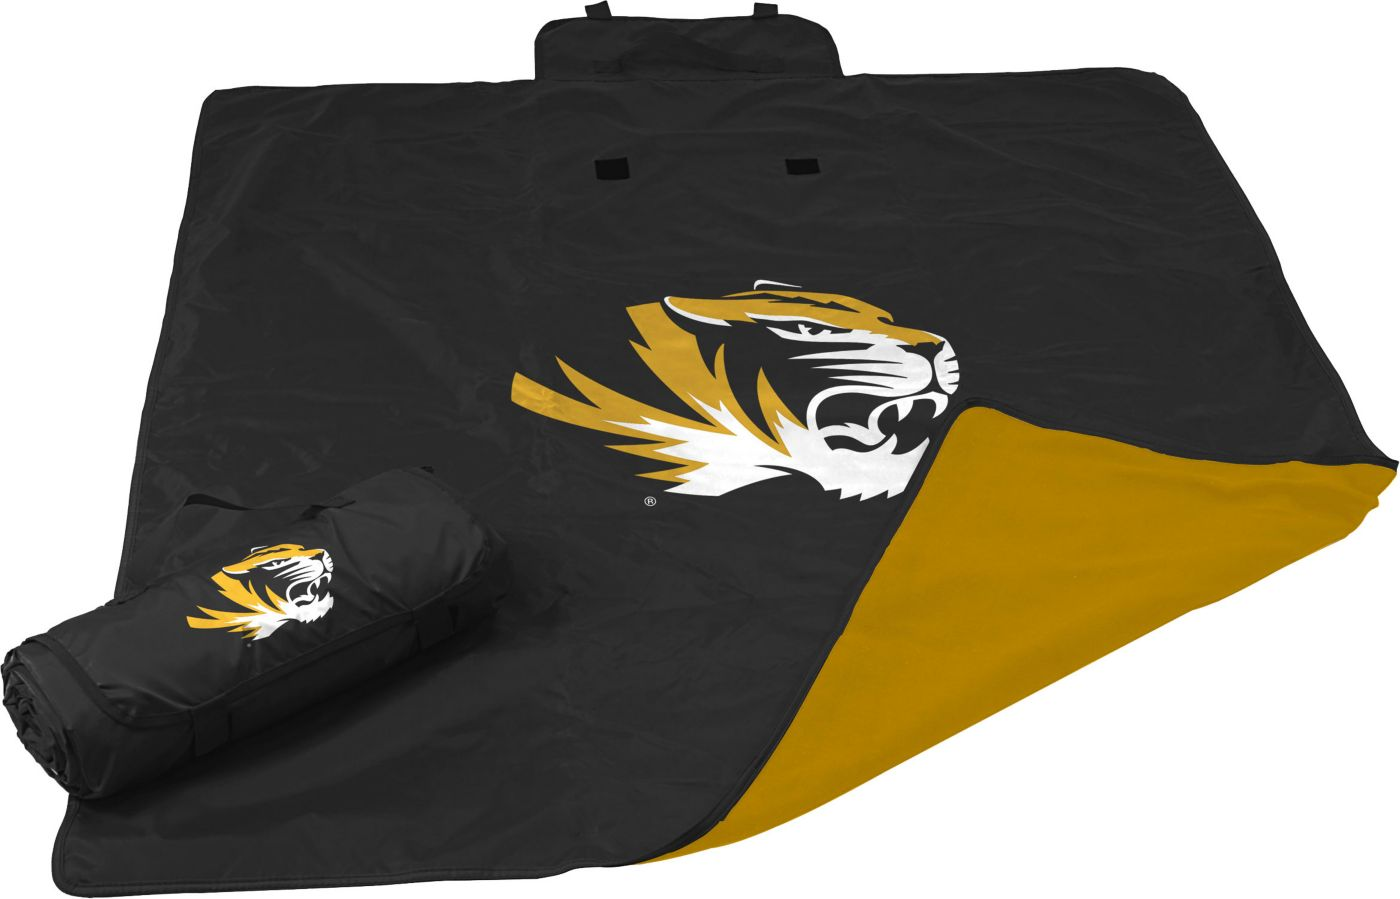 Missouri Tigers All-Weather Blanket